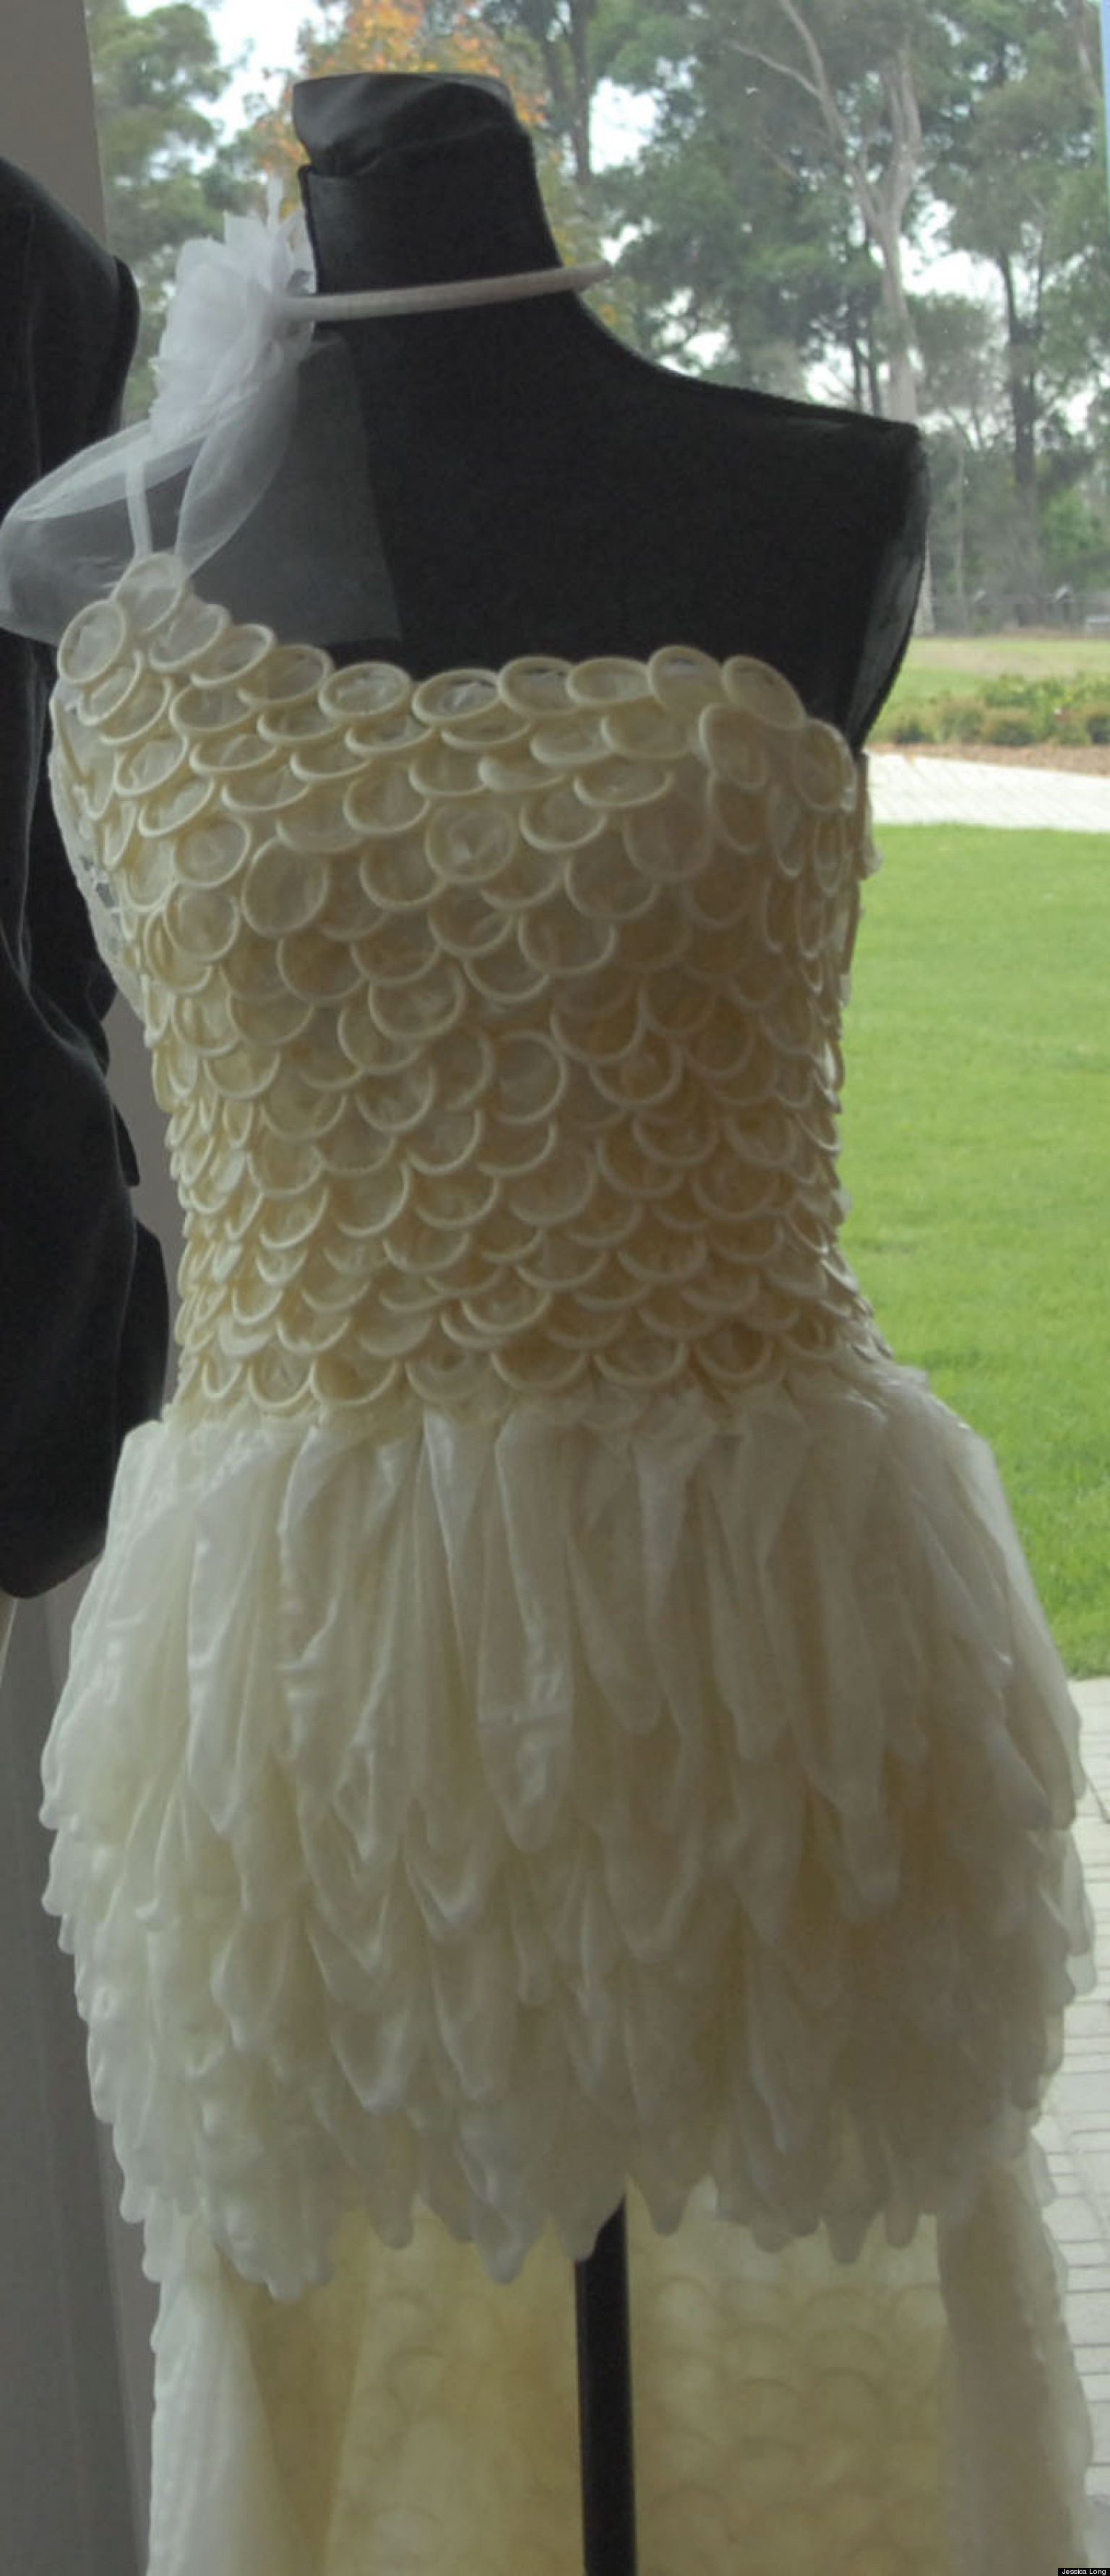 Condom Dress Wedding Gown Created For Chlamydia Awareness